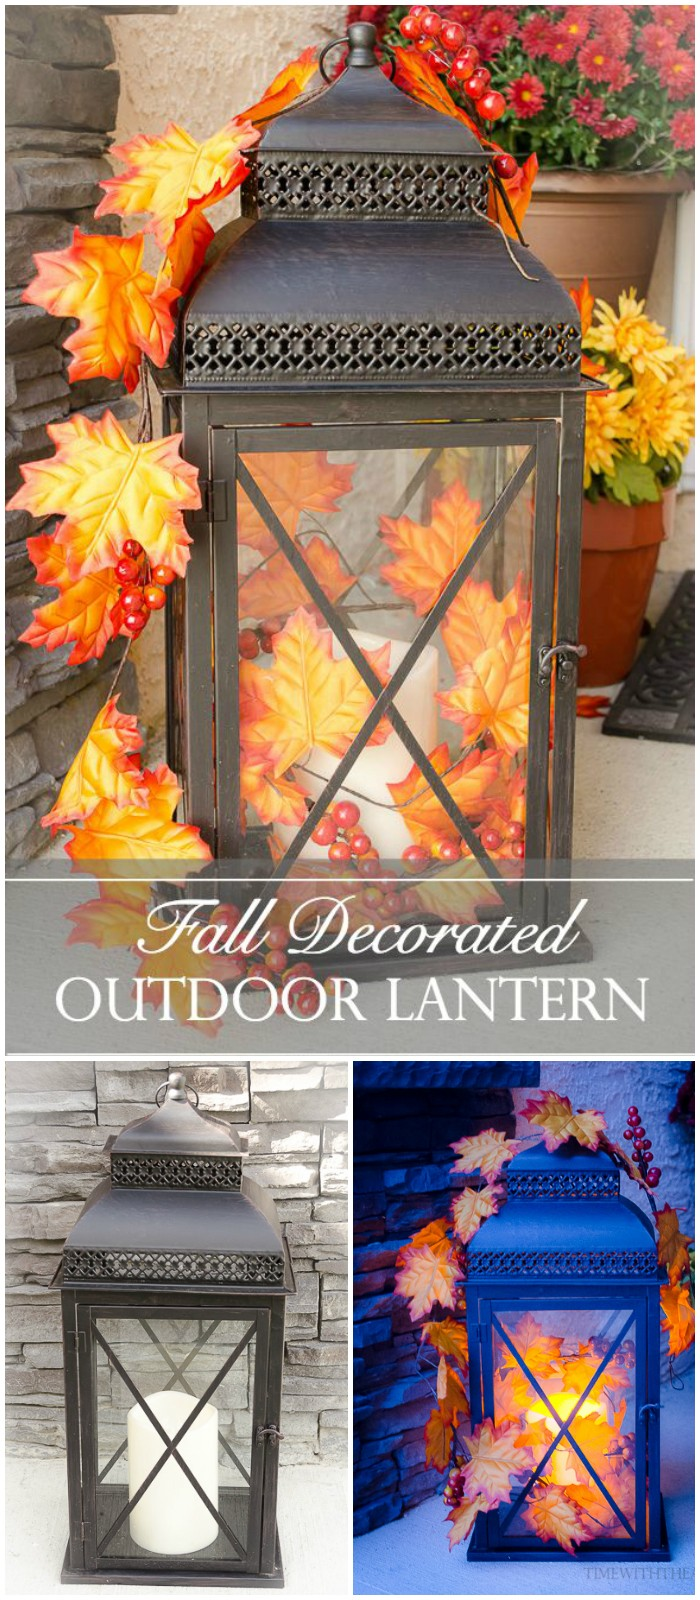 Fall Decorated Outdoor Lantern